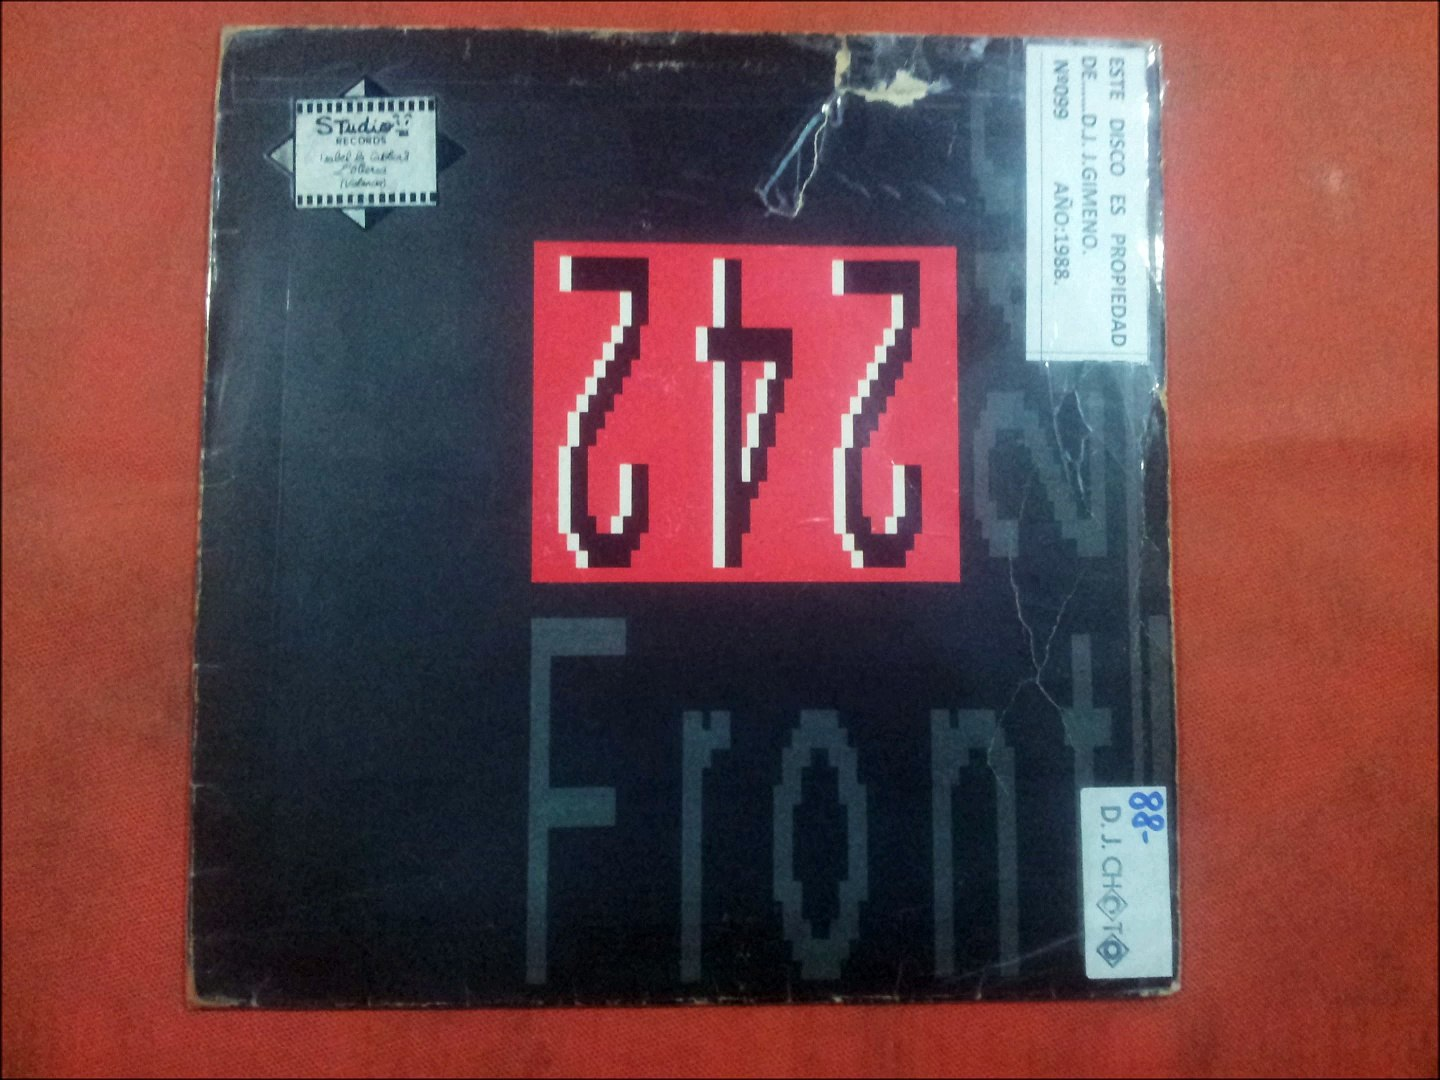 FRONT 242.''FRONT BY FRONT.''.(FELINES.)(12'' LP.)(1988.)